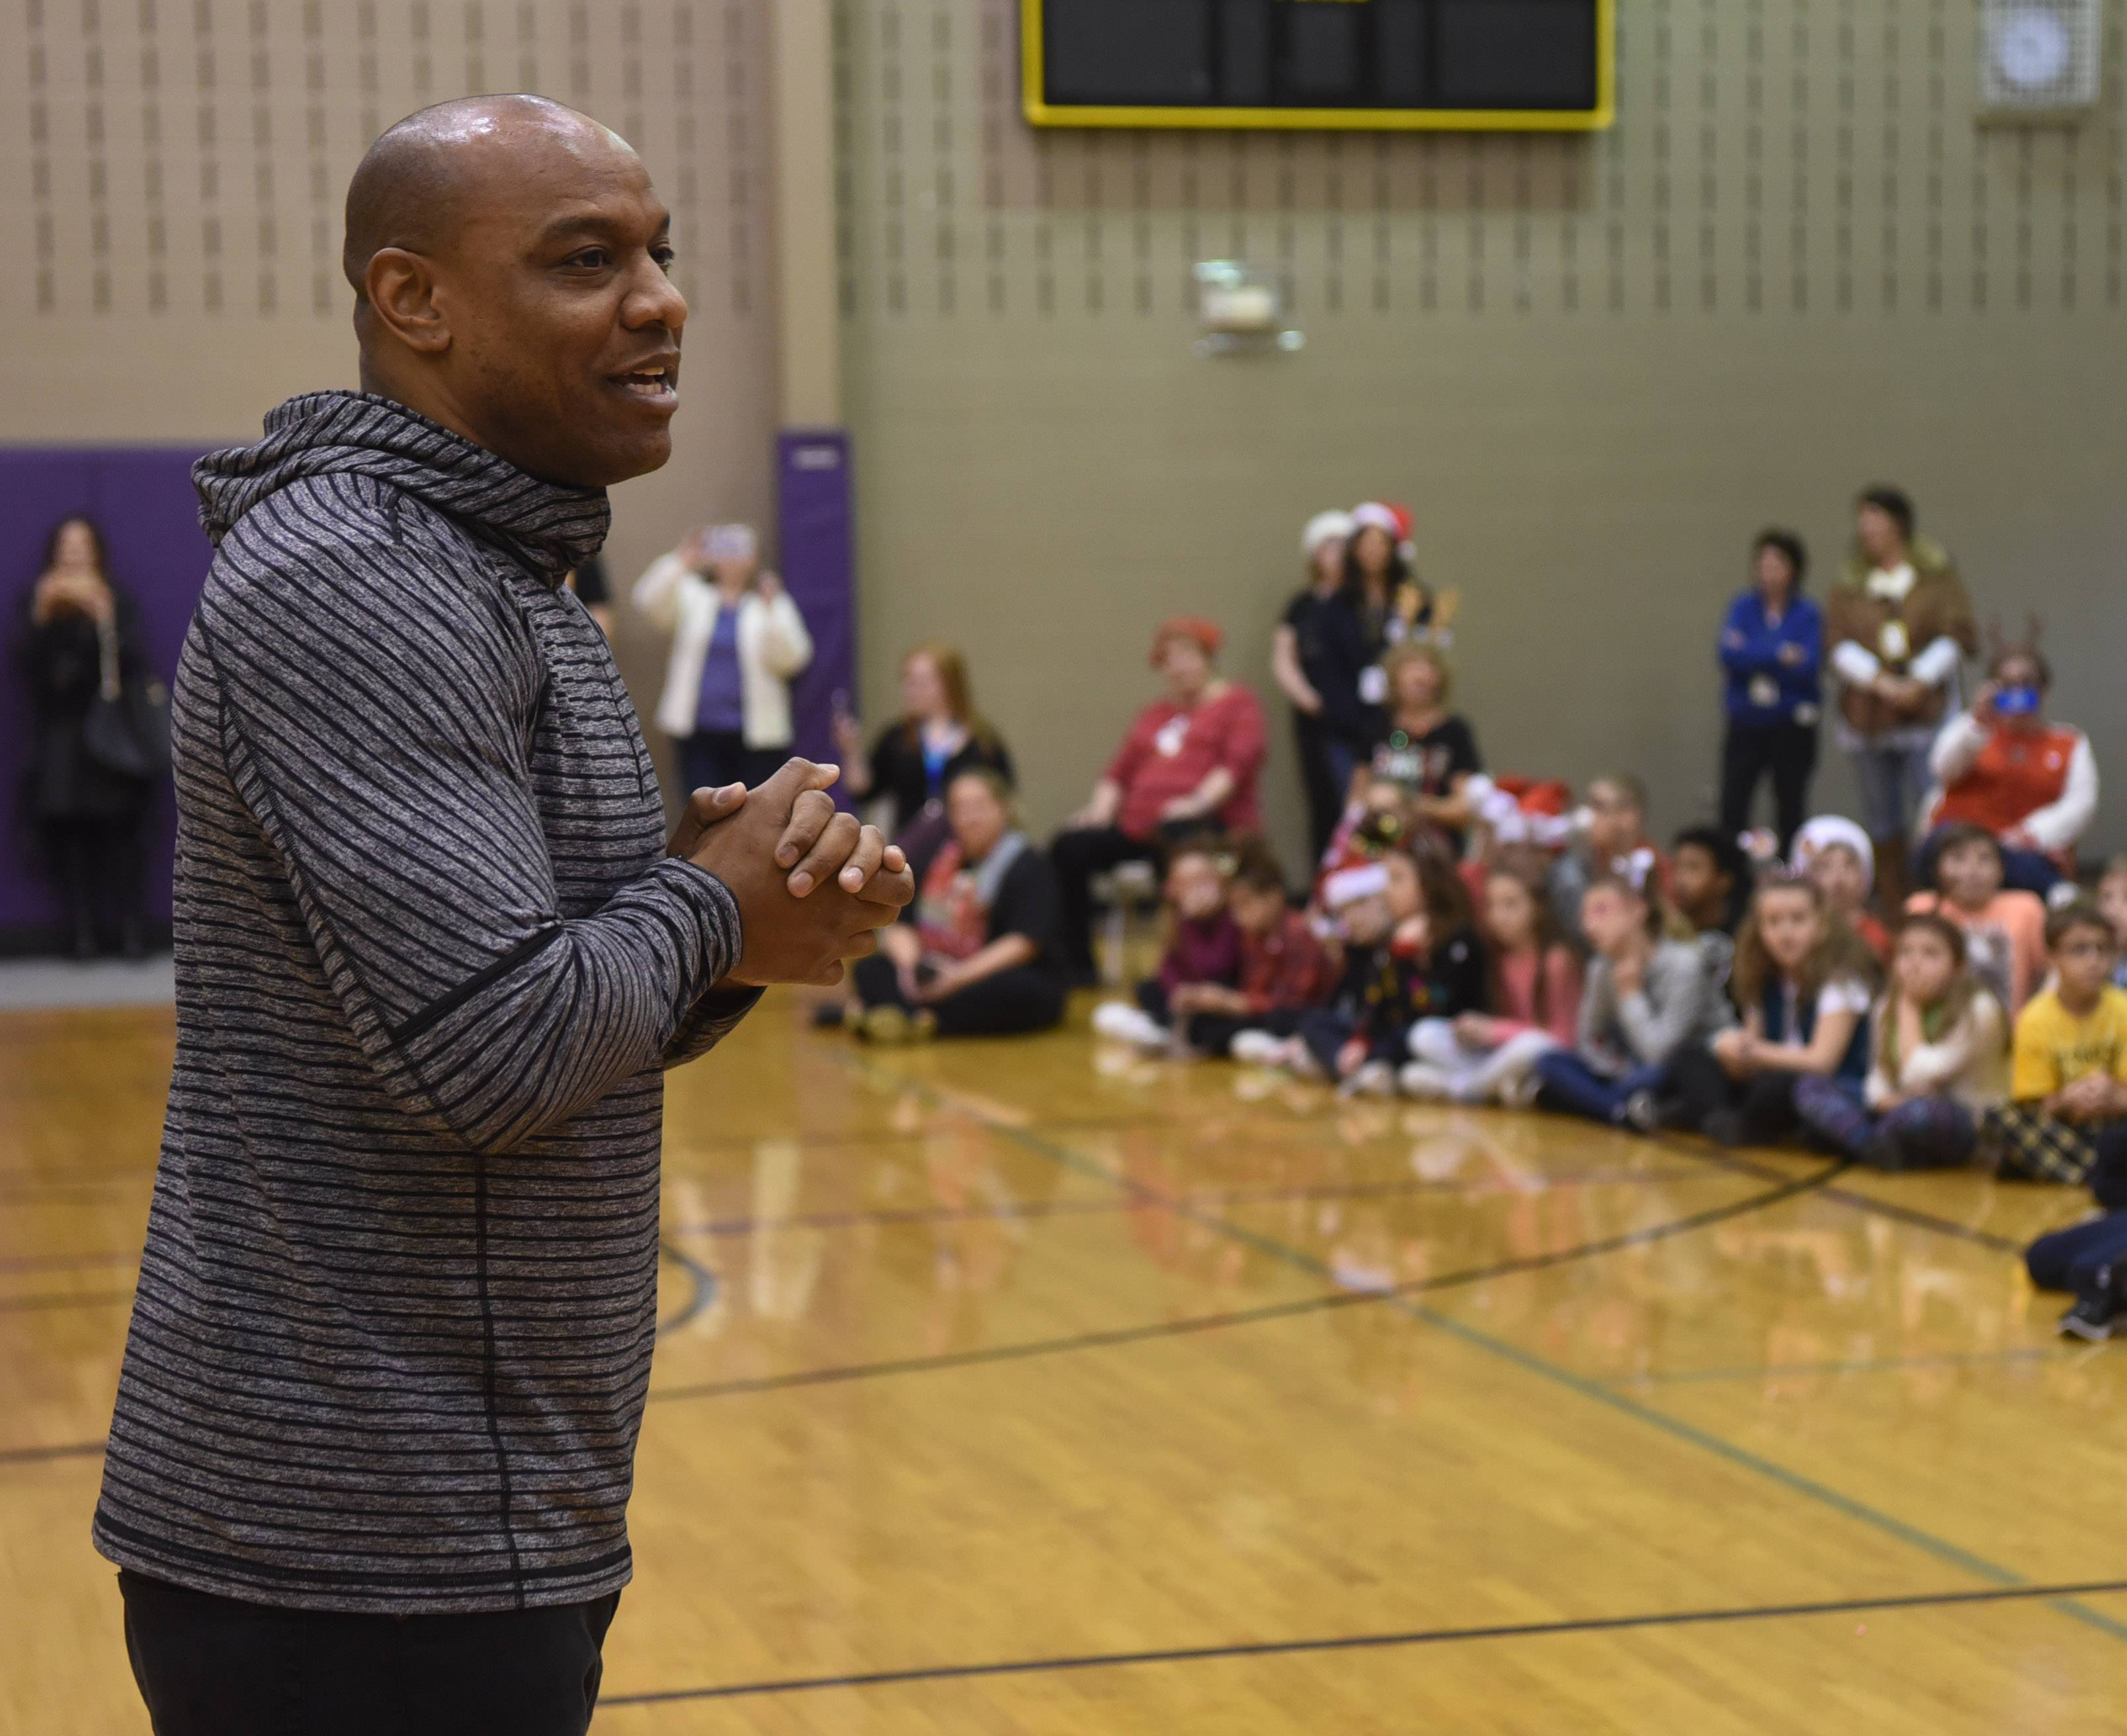 Jarrett Payton, son of Walter Payton, speaks during a celebration announcing that St. Hubert School in Hoffman Estates won first place in a diocese-wide food collection challenge.